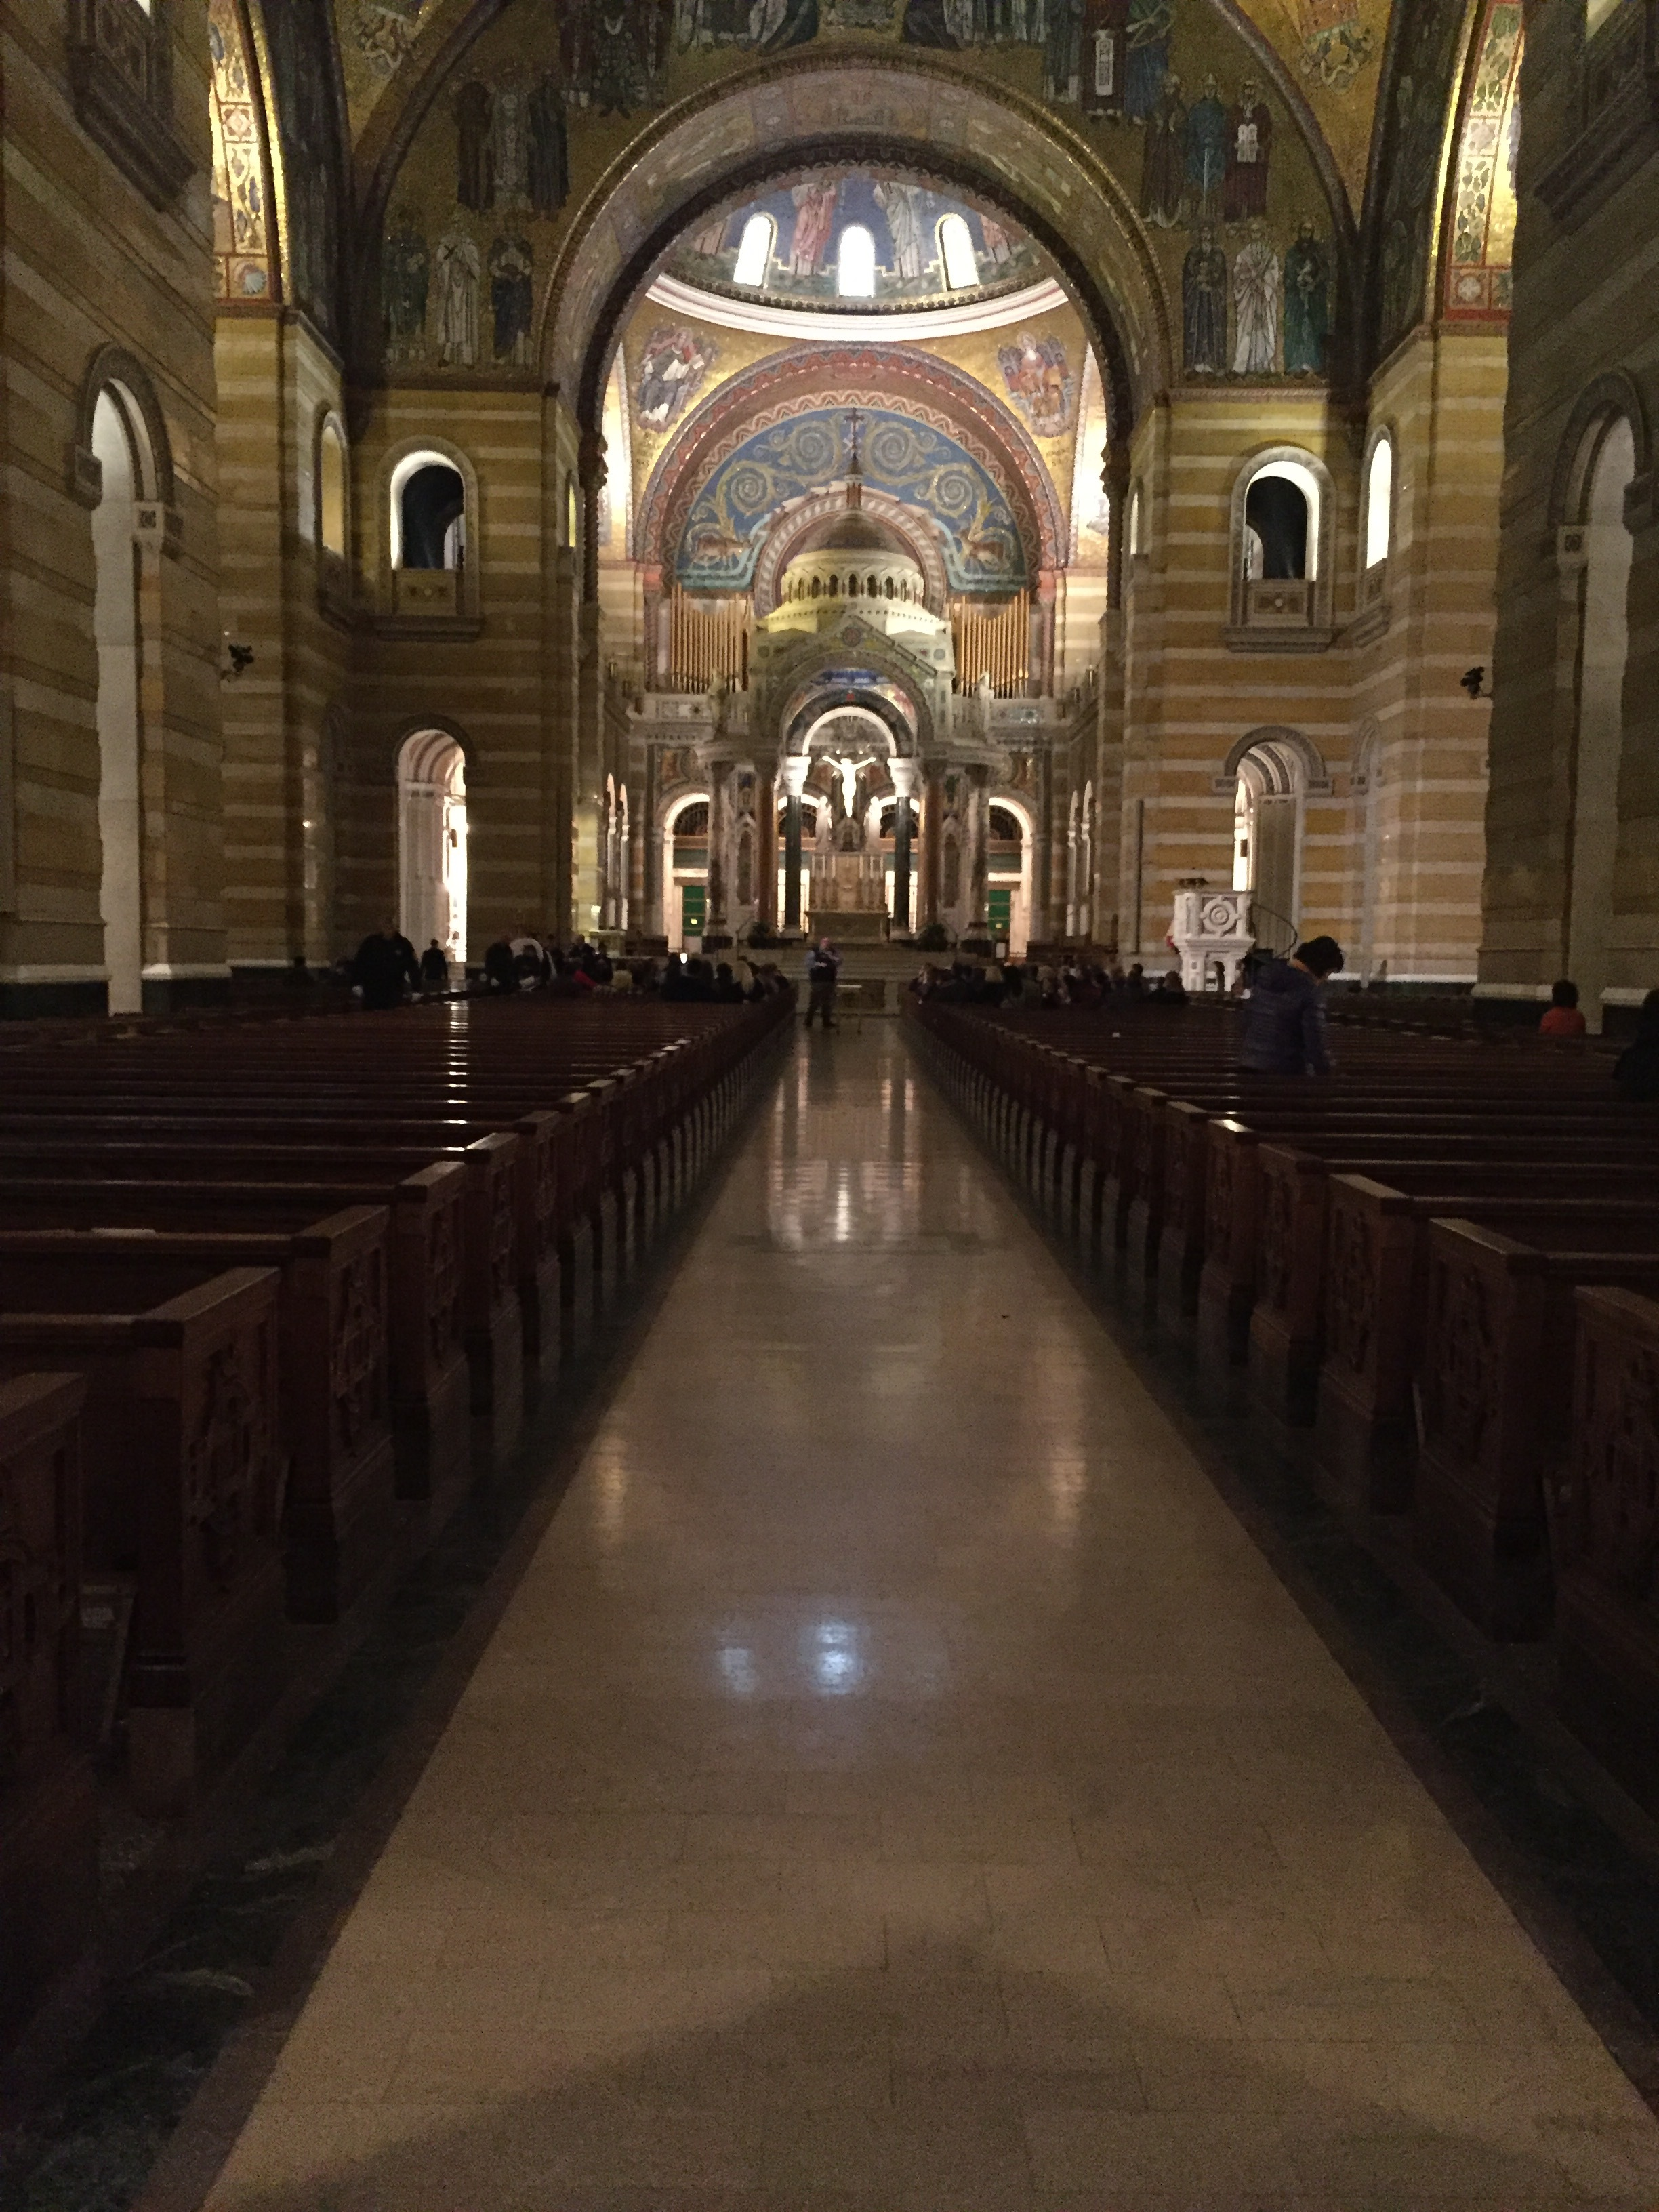 Cathedral Basilica of St. Louis.St. Louis, Mo. Photo by Kat Lane, 2017.